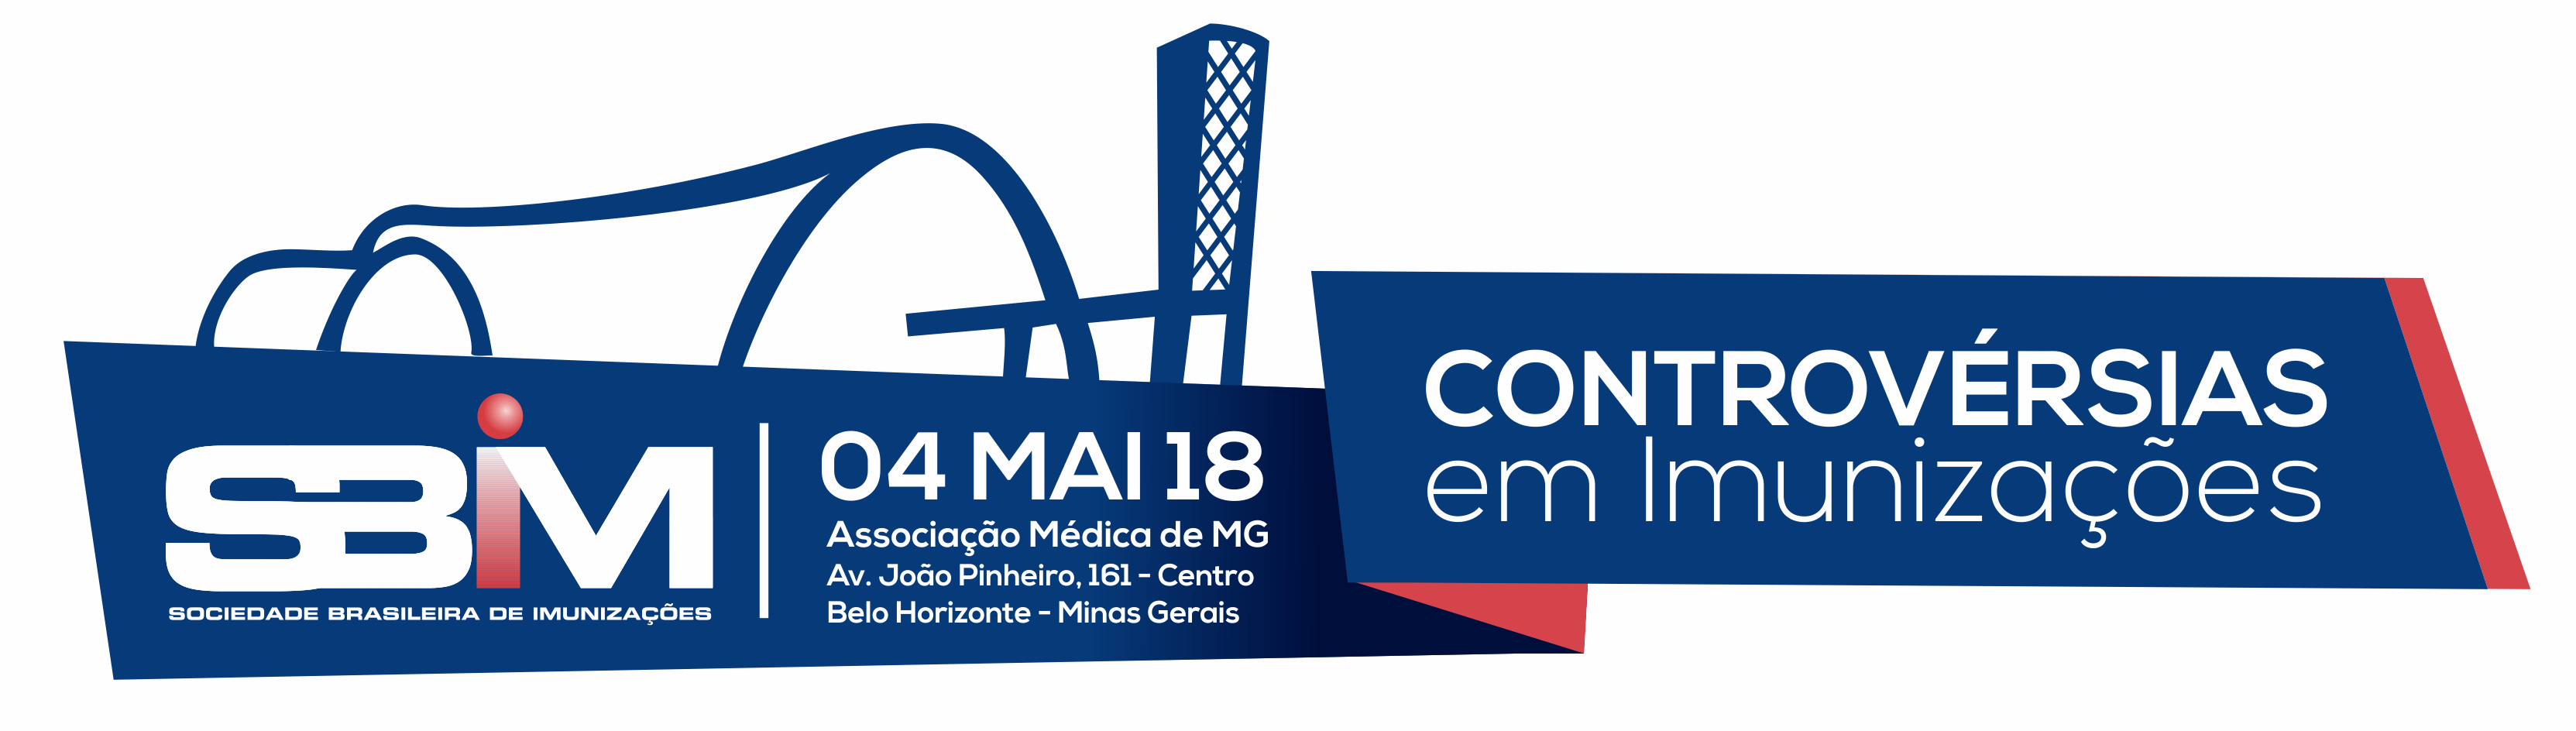 logo controversias 2018